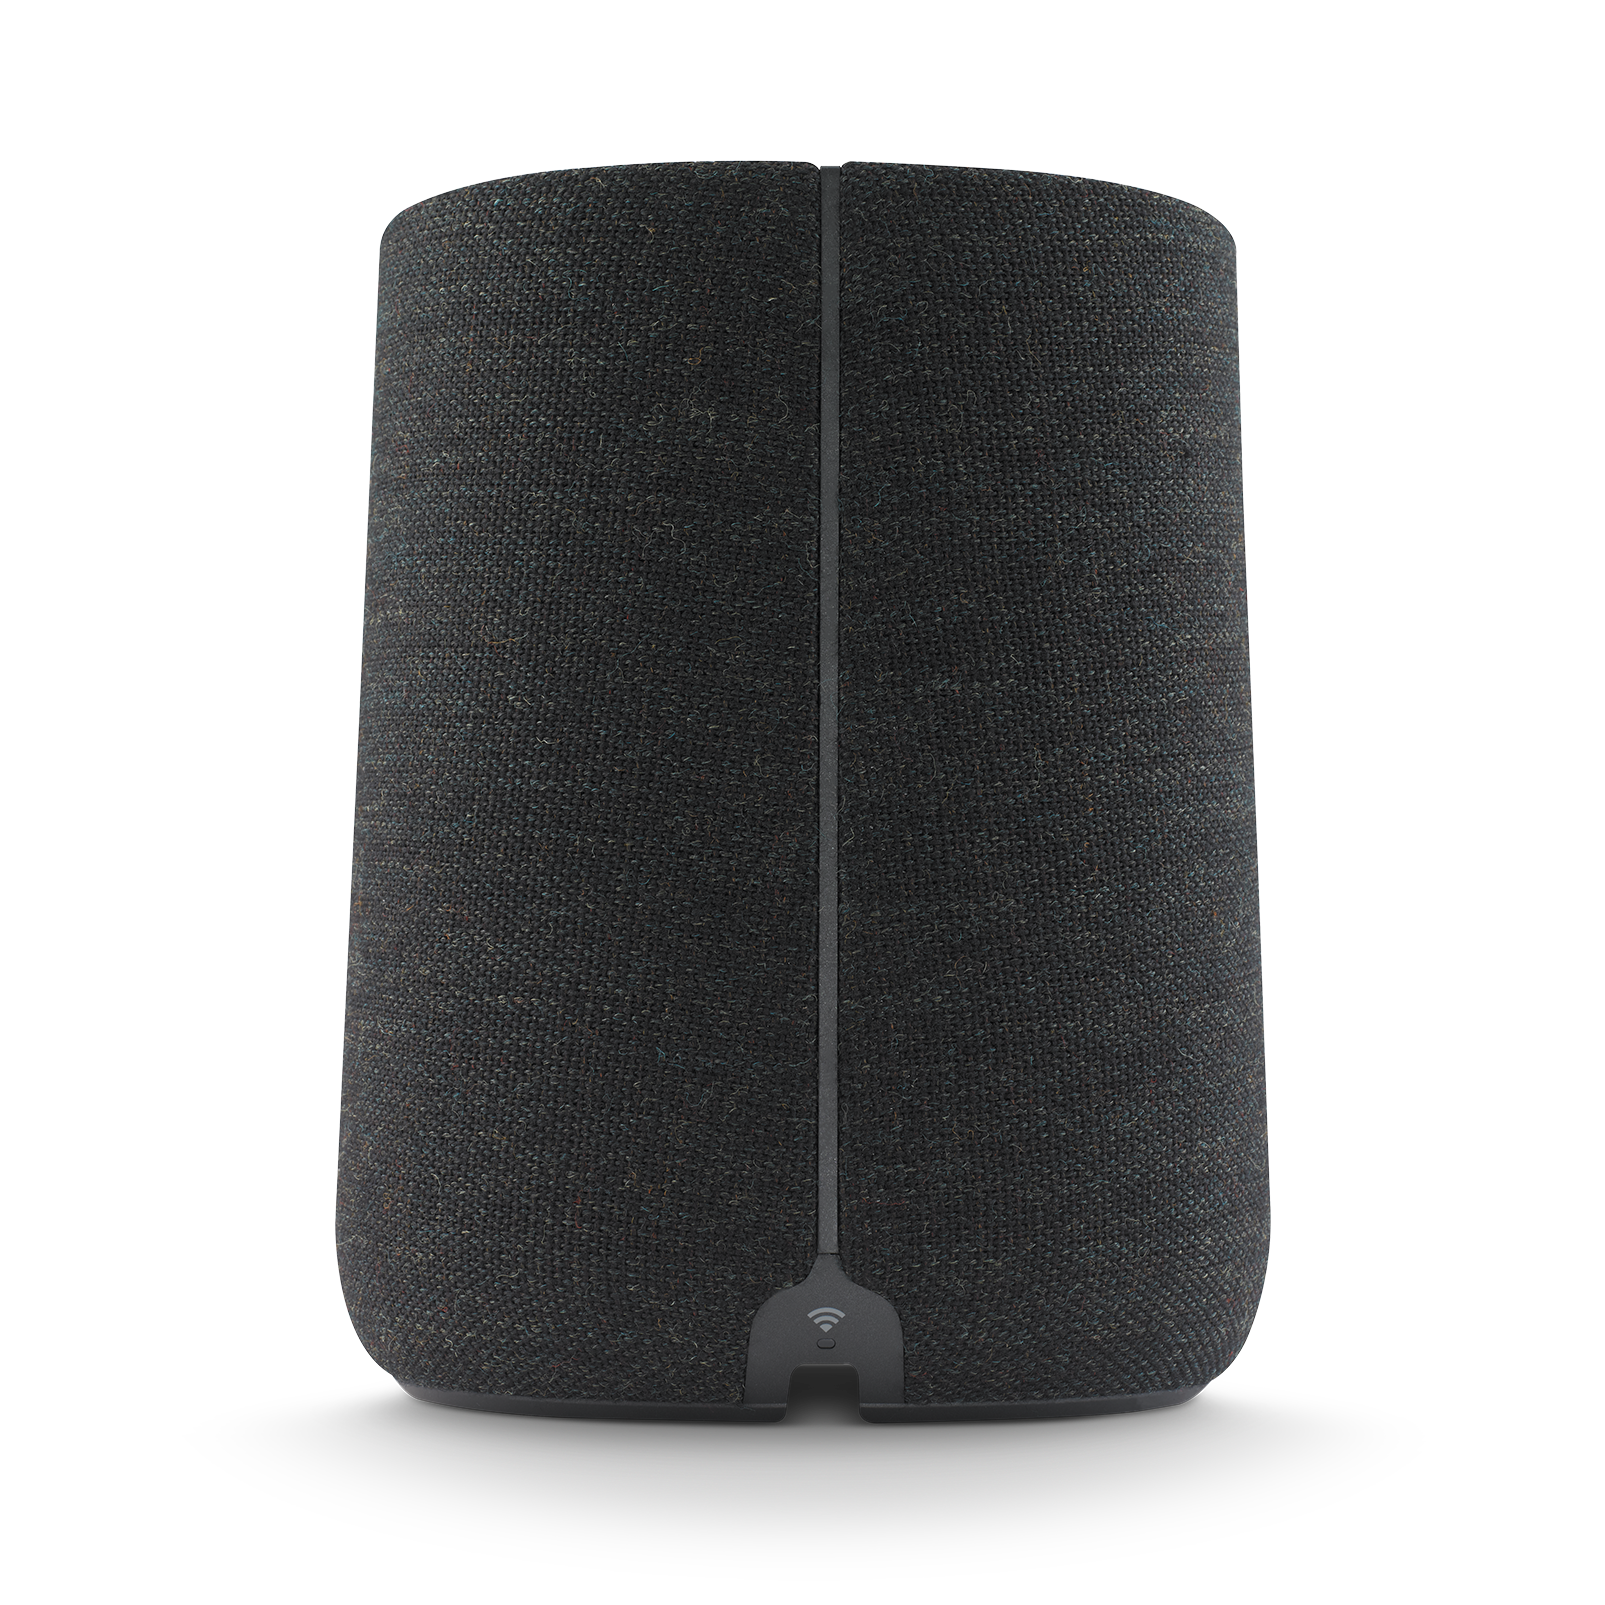 Harman Kardon Citation One MKII - Black - All-in-one smart speaker with room-filling sound - Back